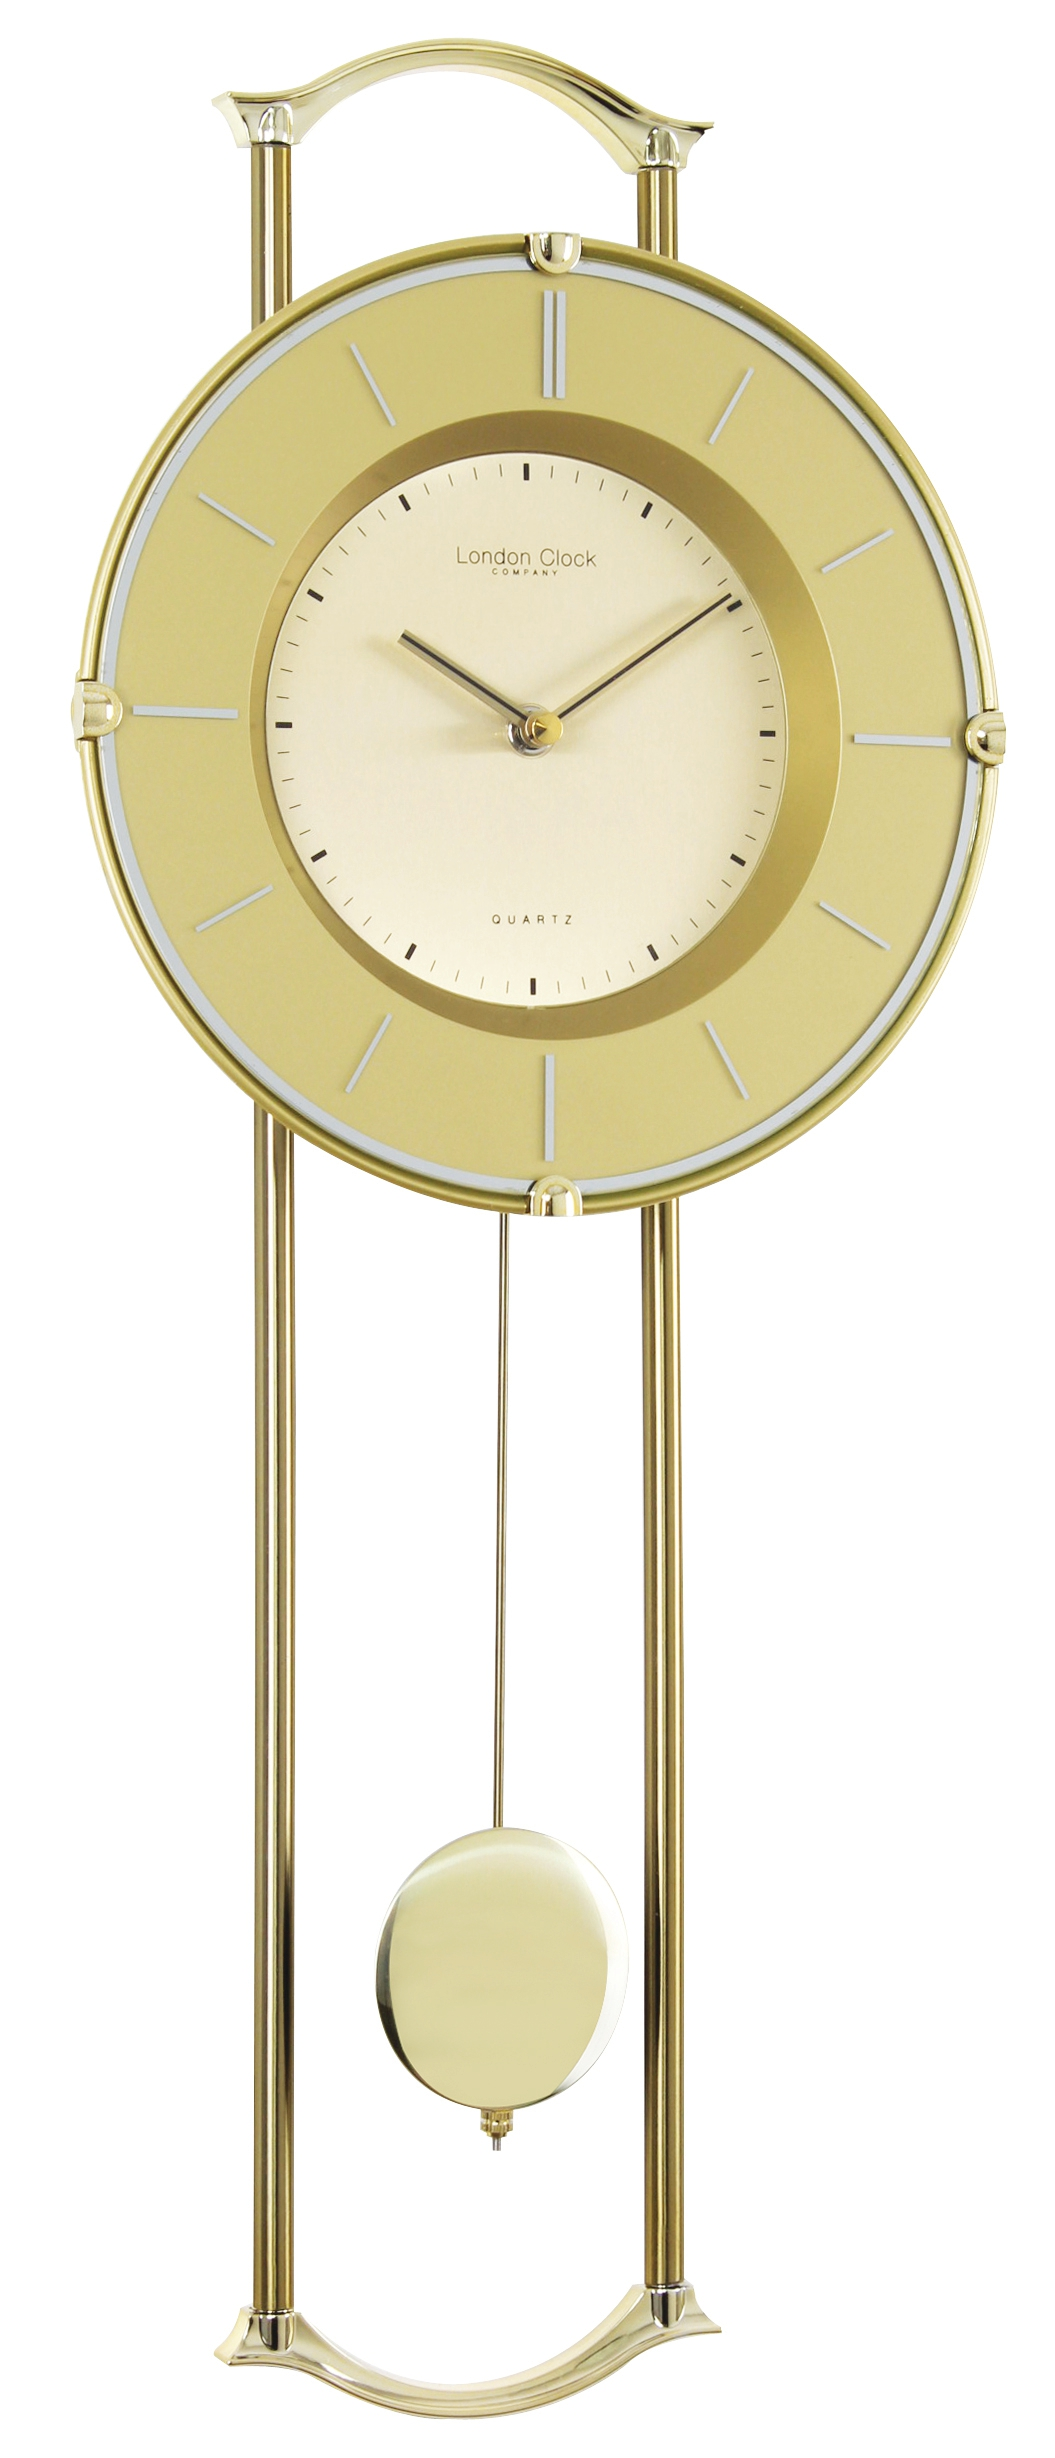 London clock company gold finish contemporary pendulum wall clock ebay - Contemporary wall clocks with pendulum ...